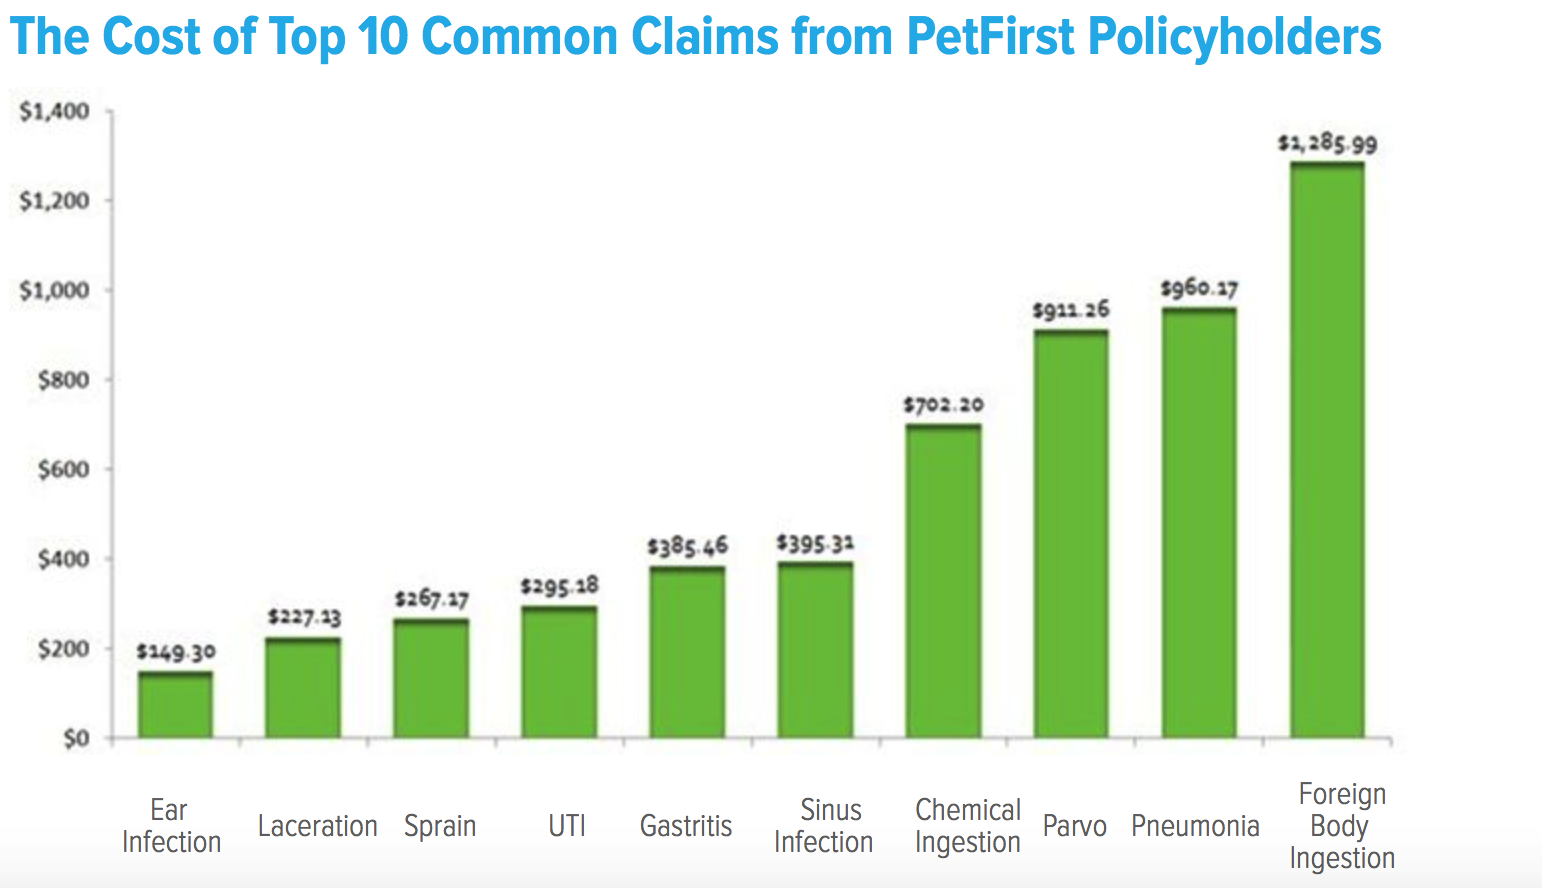 The Cost of Top 10 Common Claims from PetFirst